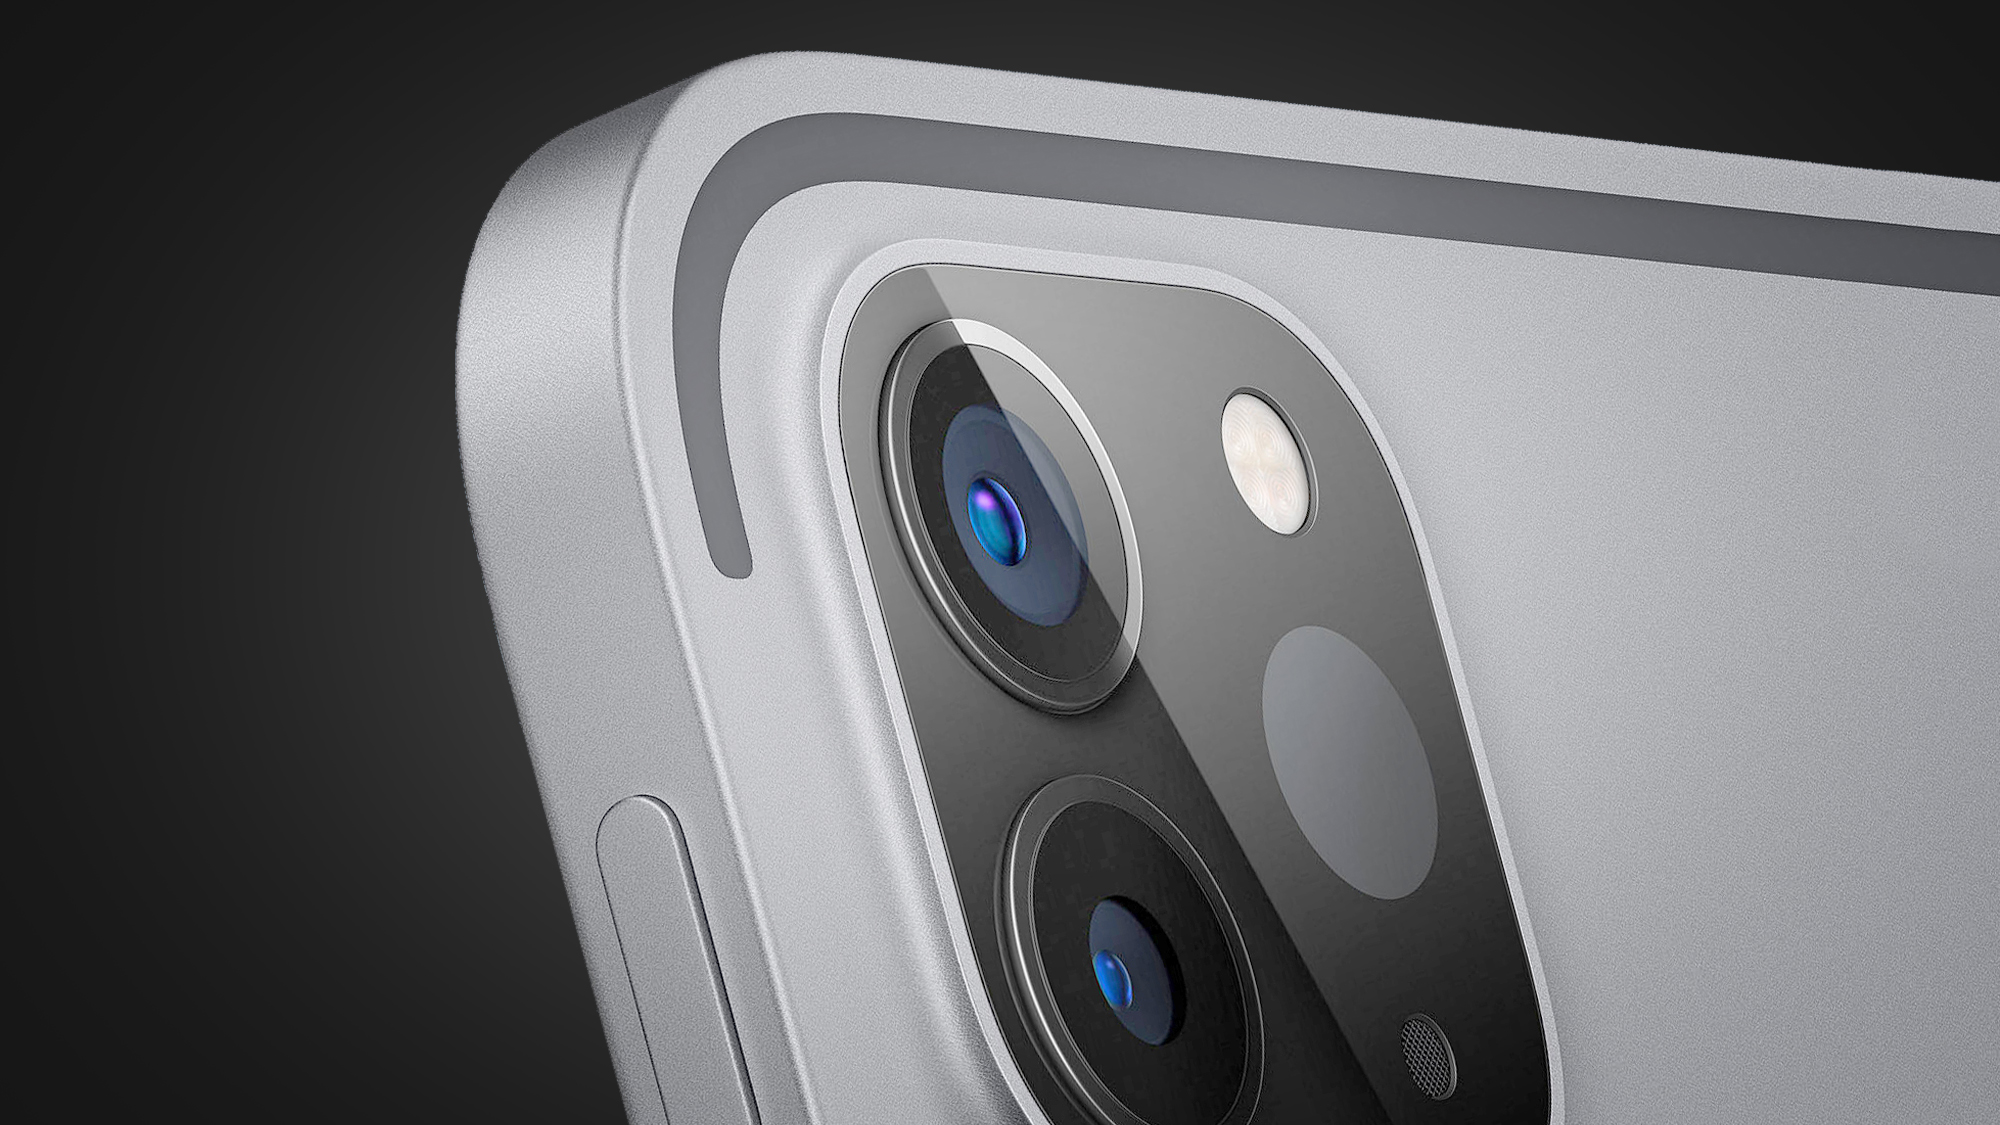 The camera module on the iPhone 12 Pro